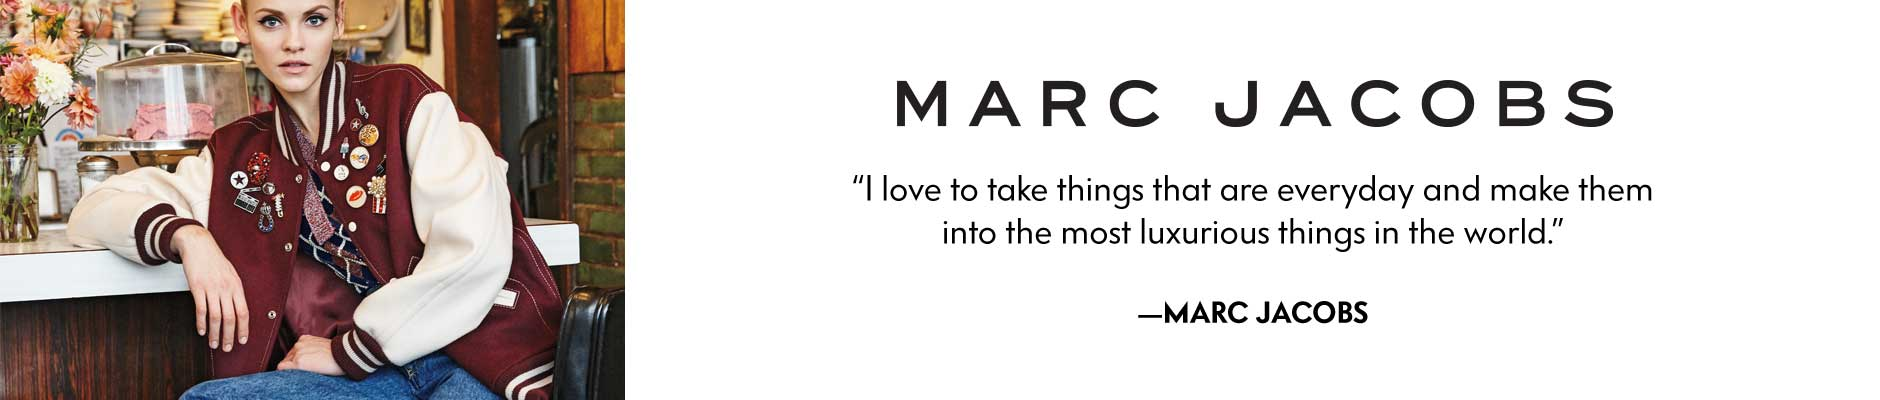 Marc Jacobs - I Love to take things that are everyday and make them into the most luxurious things in the world.